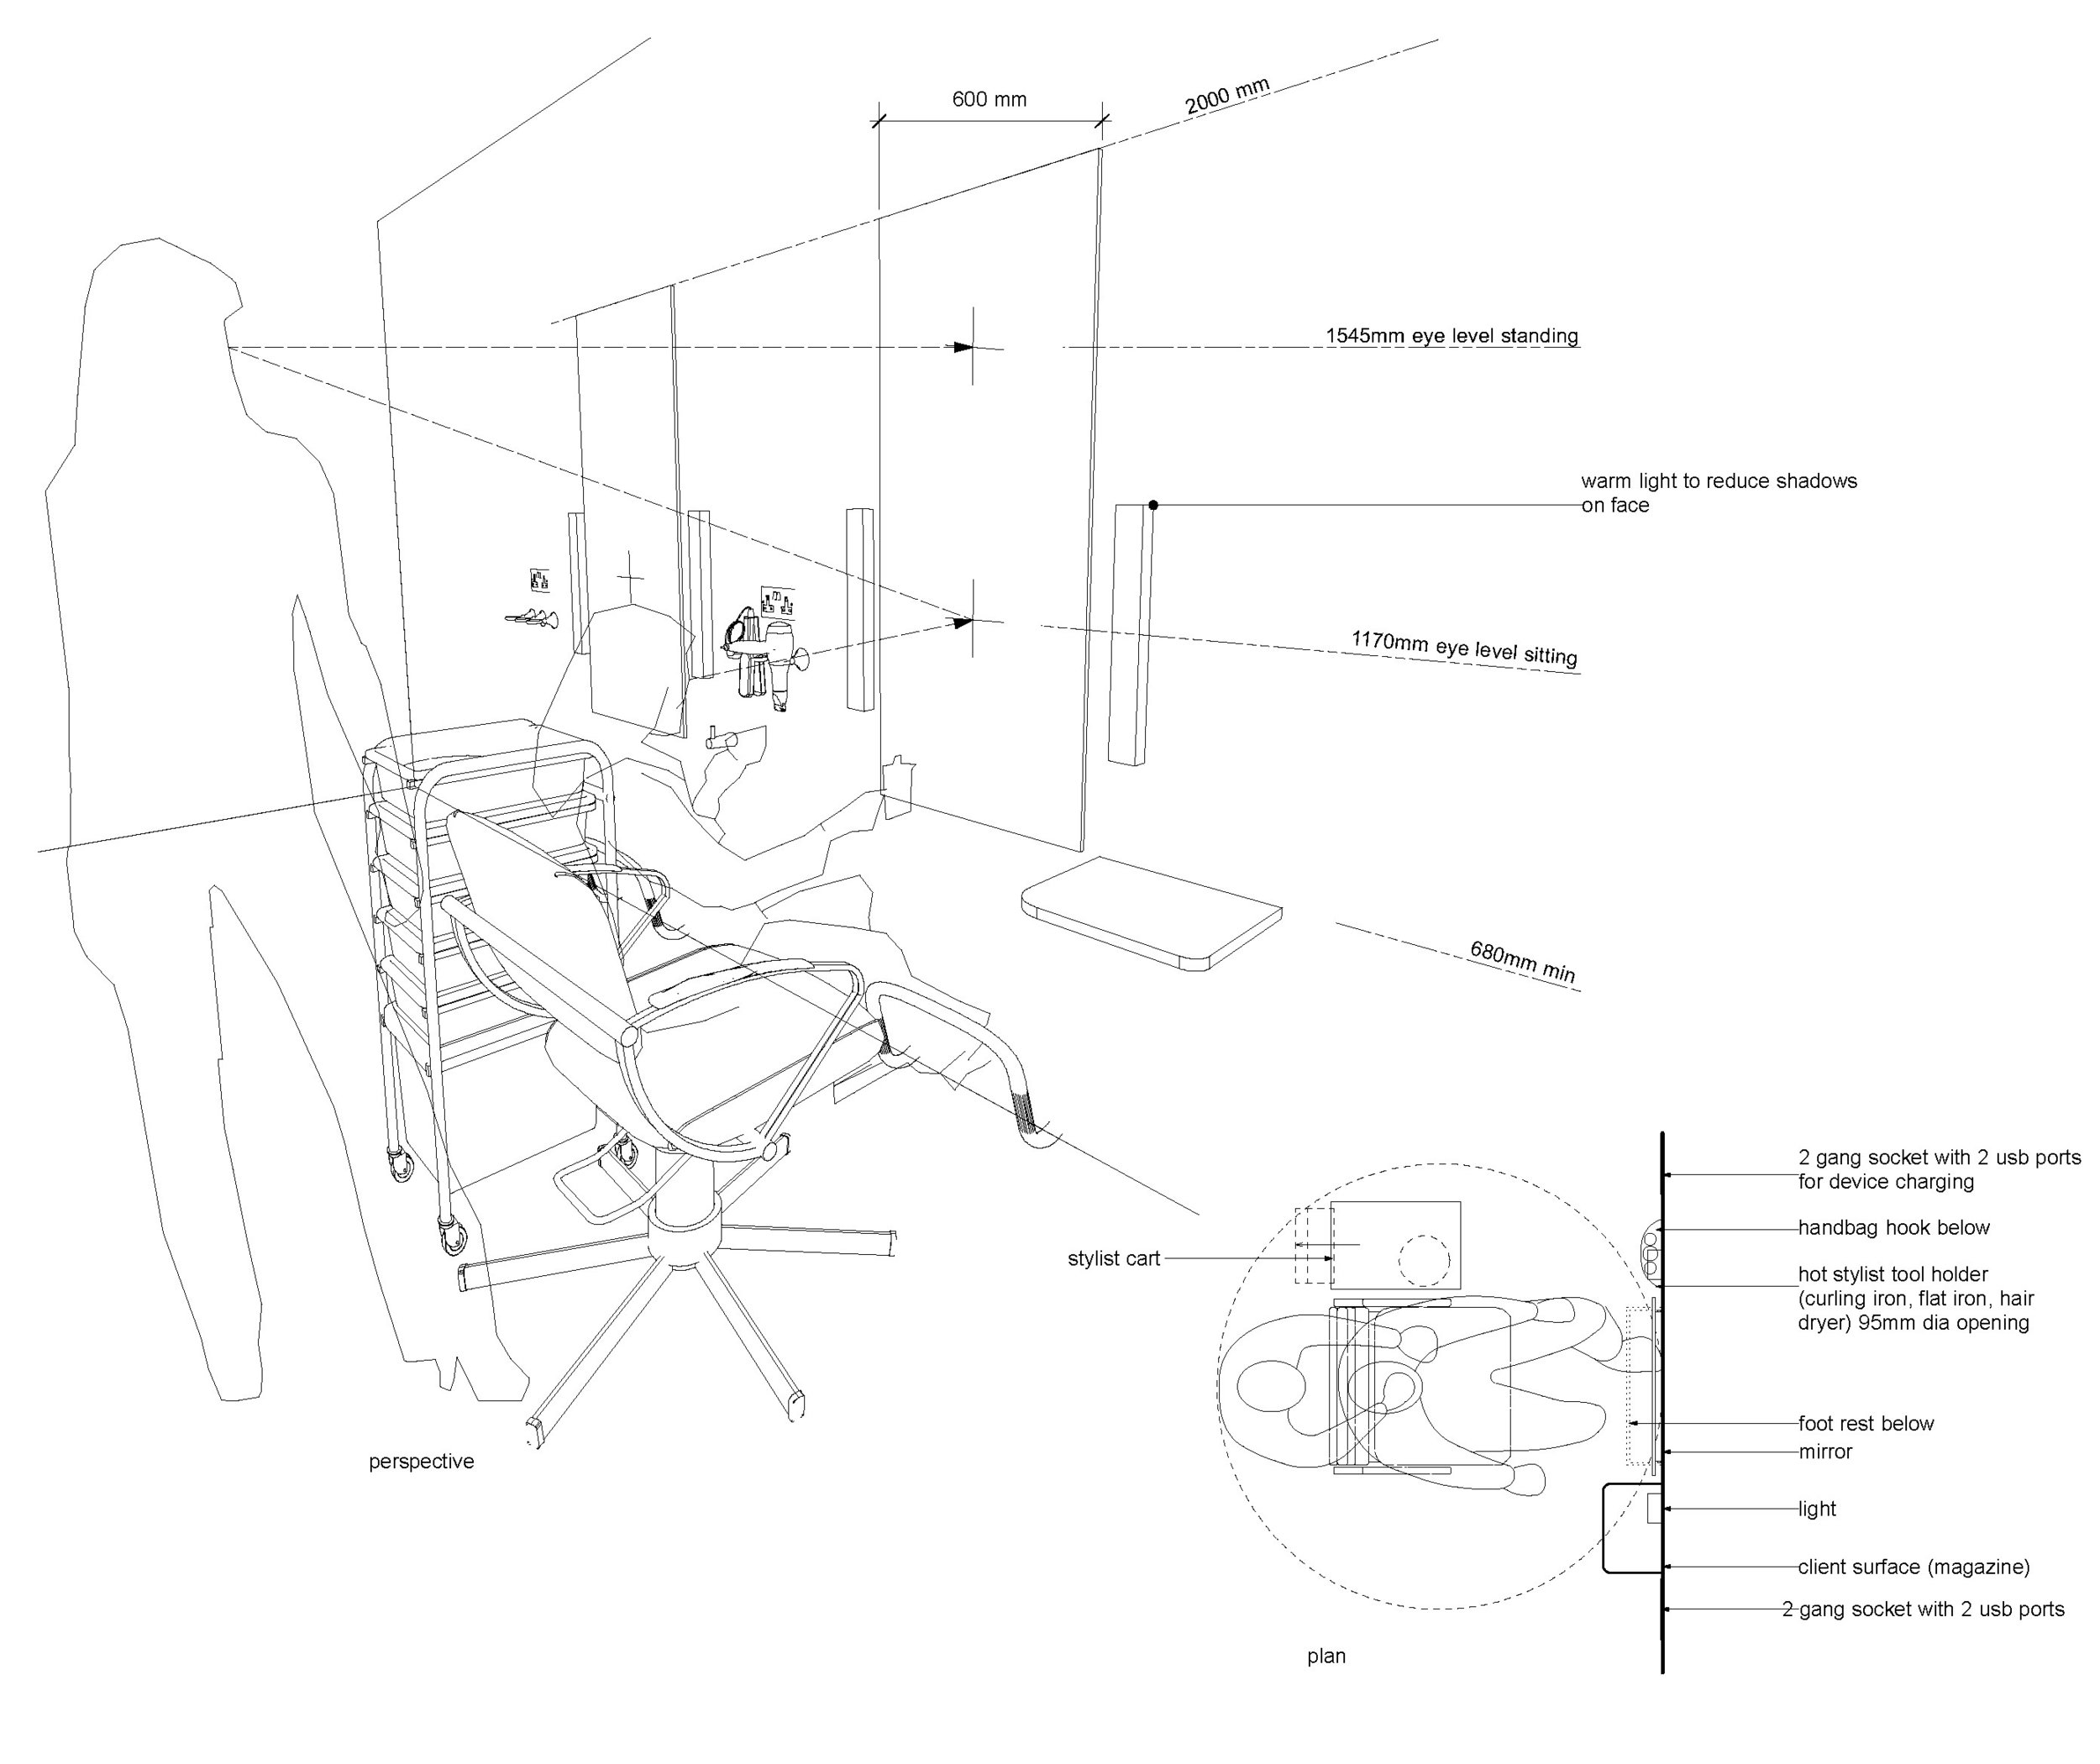 FINEarchitecture_BrooksBrooks_Sketch_2.jpg